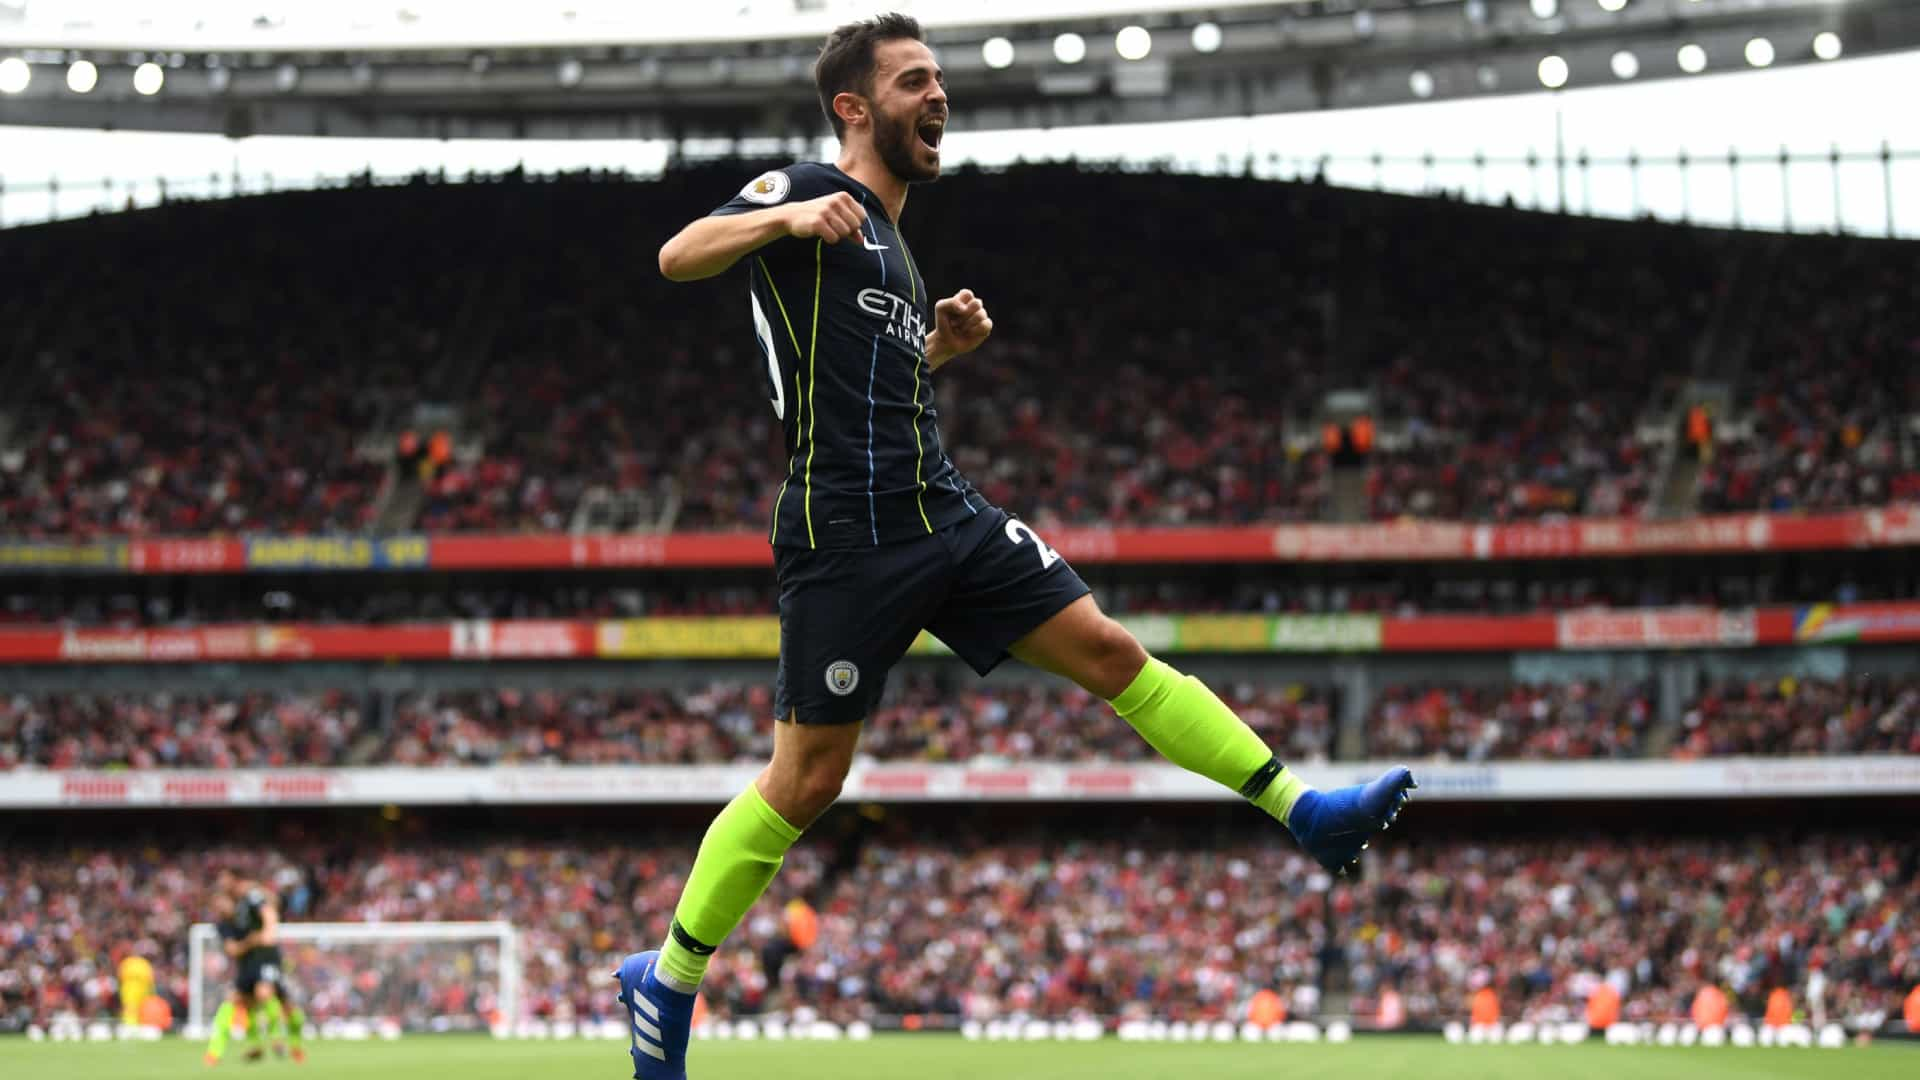 Premier League: Man. City bate Arsenal com ajuda de Bernardo Silva